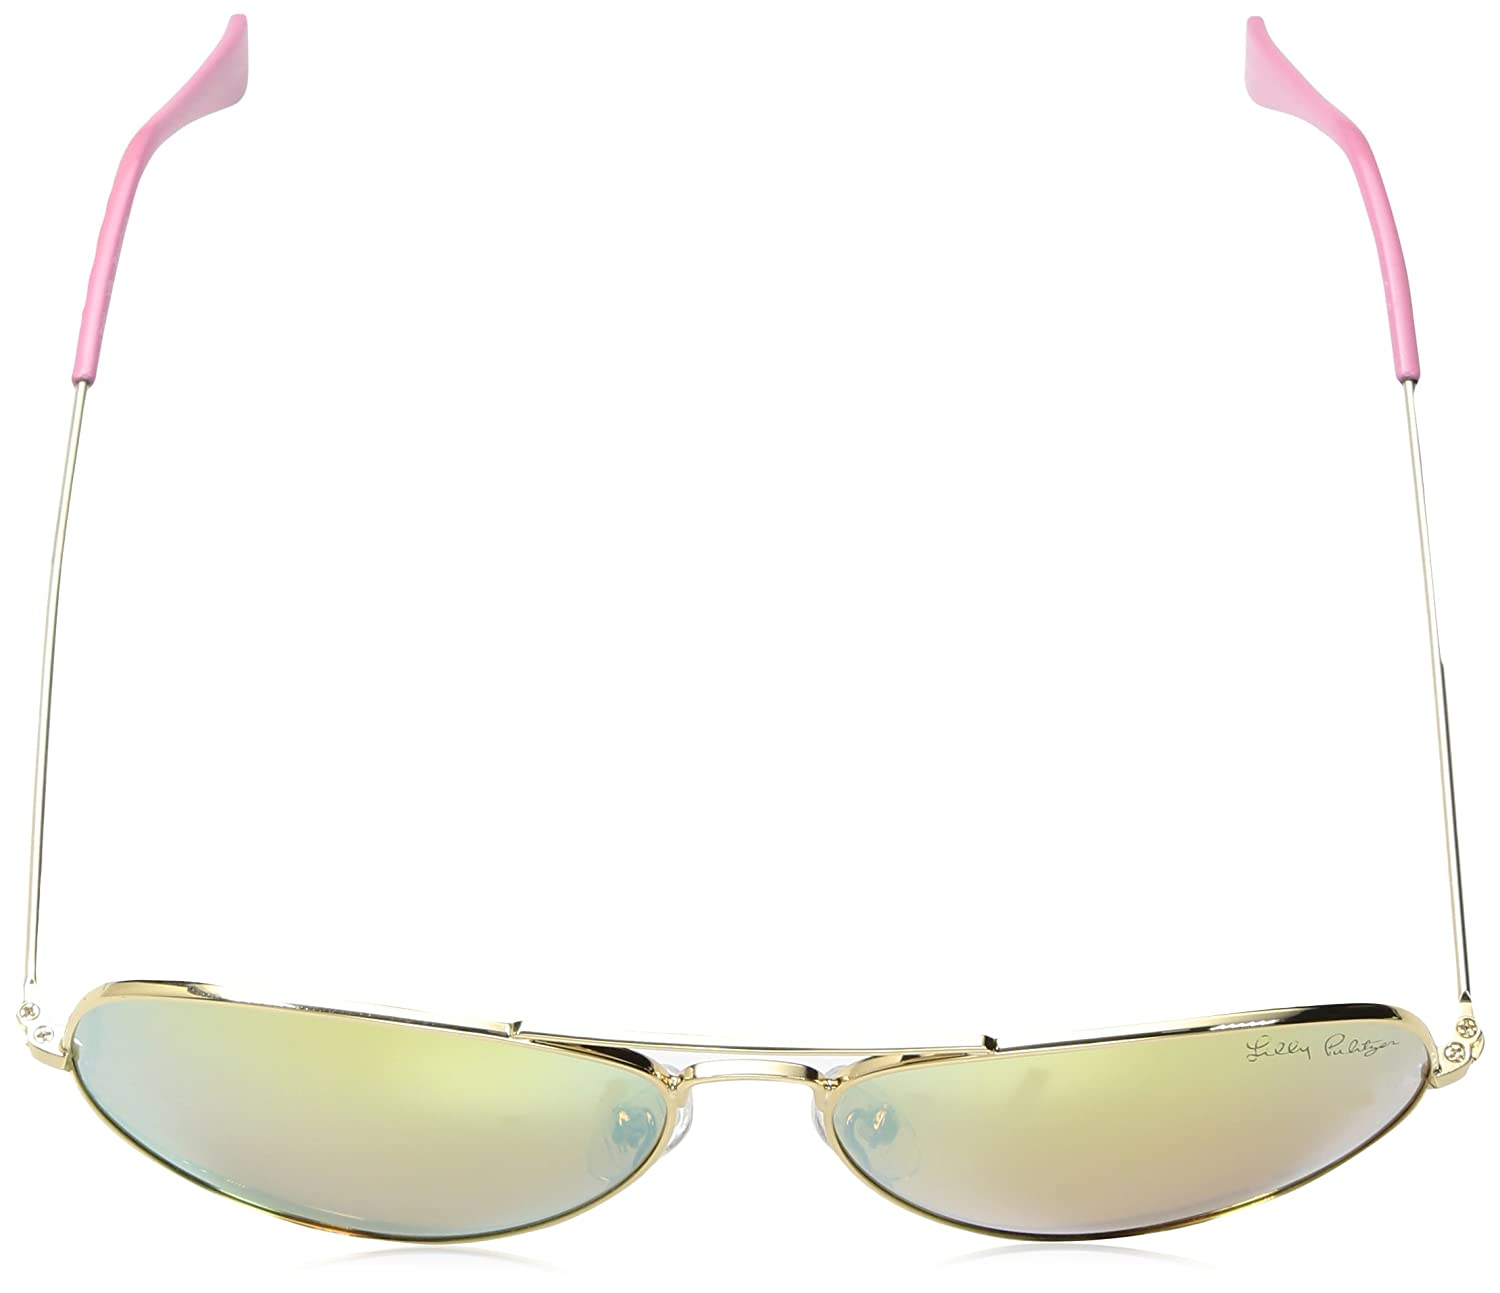 4722d3508b2 Amazon.com  Lilly Pulitzer Women s Lexy Polarized Aviator Sunglasses Shiny  Gold Coco Coral Crab 59 mm  Clothing